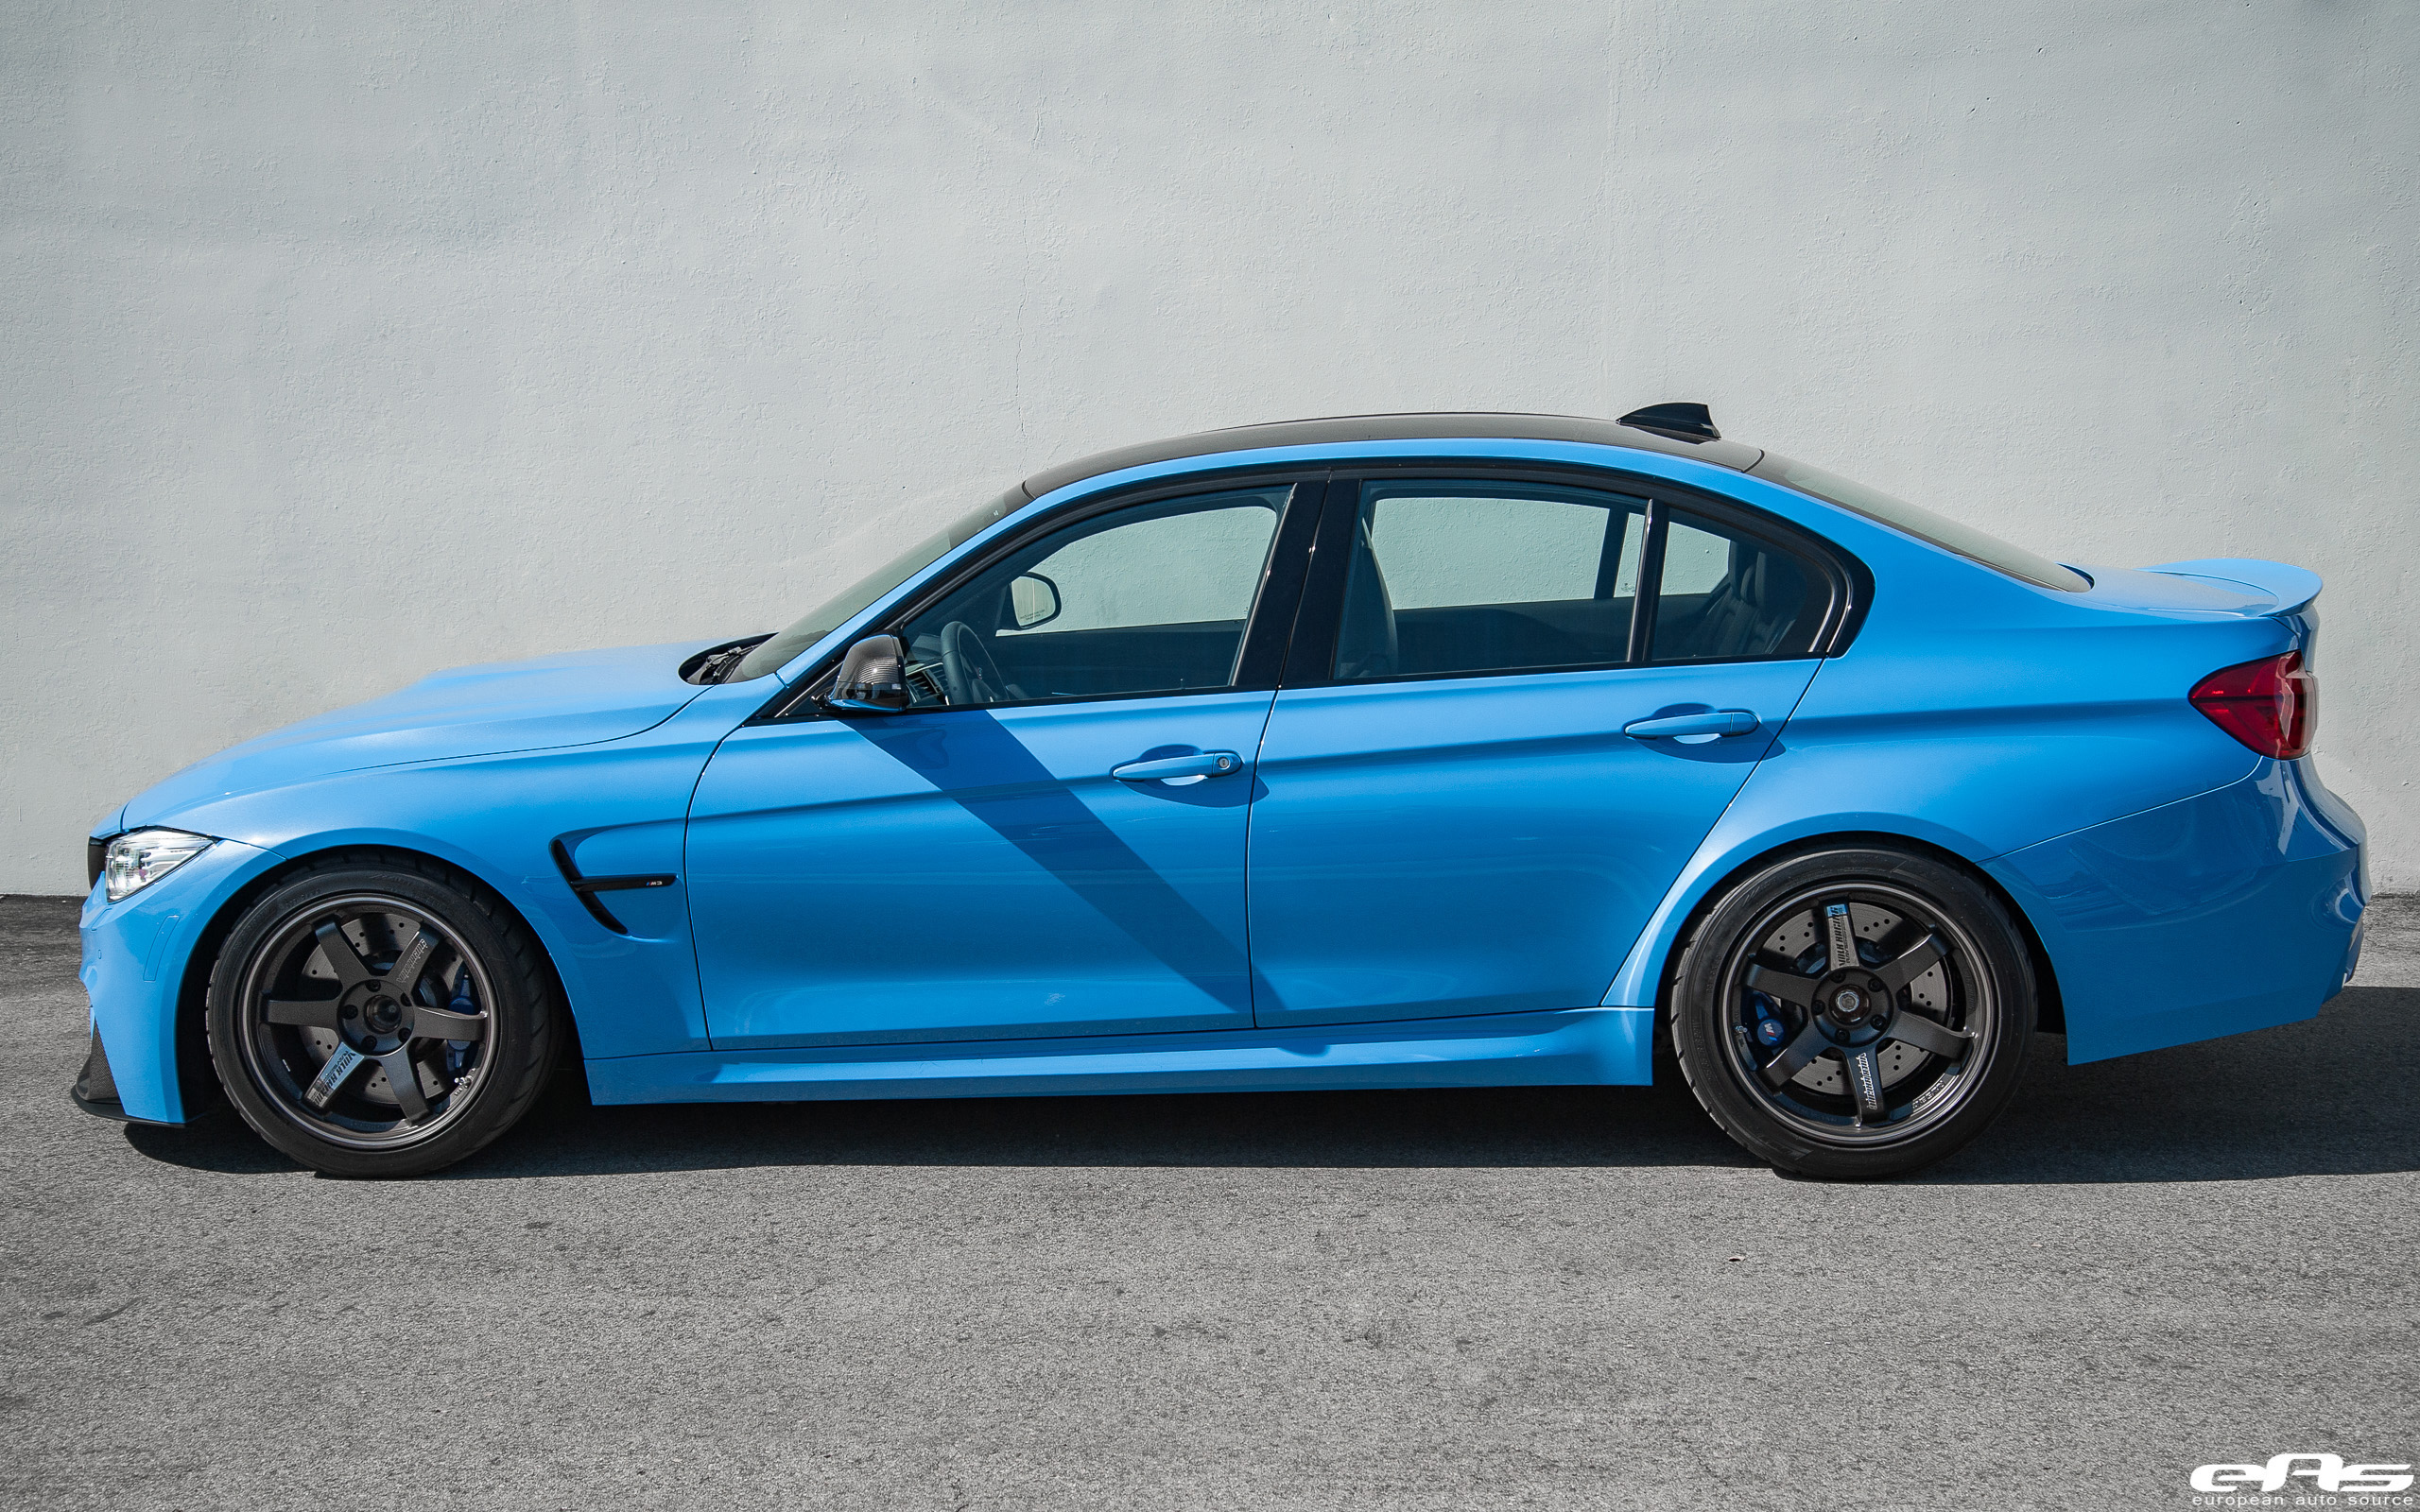 F80 Bmw M3 Yas Marina With M Performance Parts 1 Images